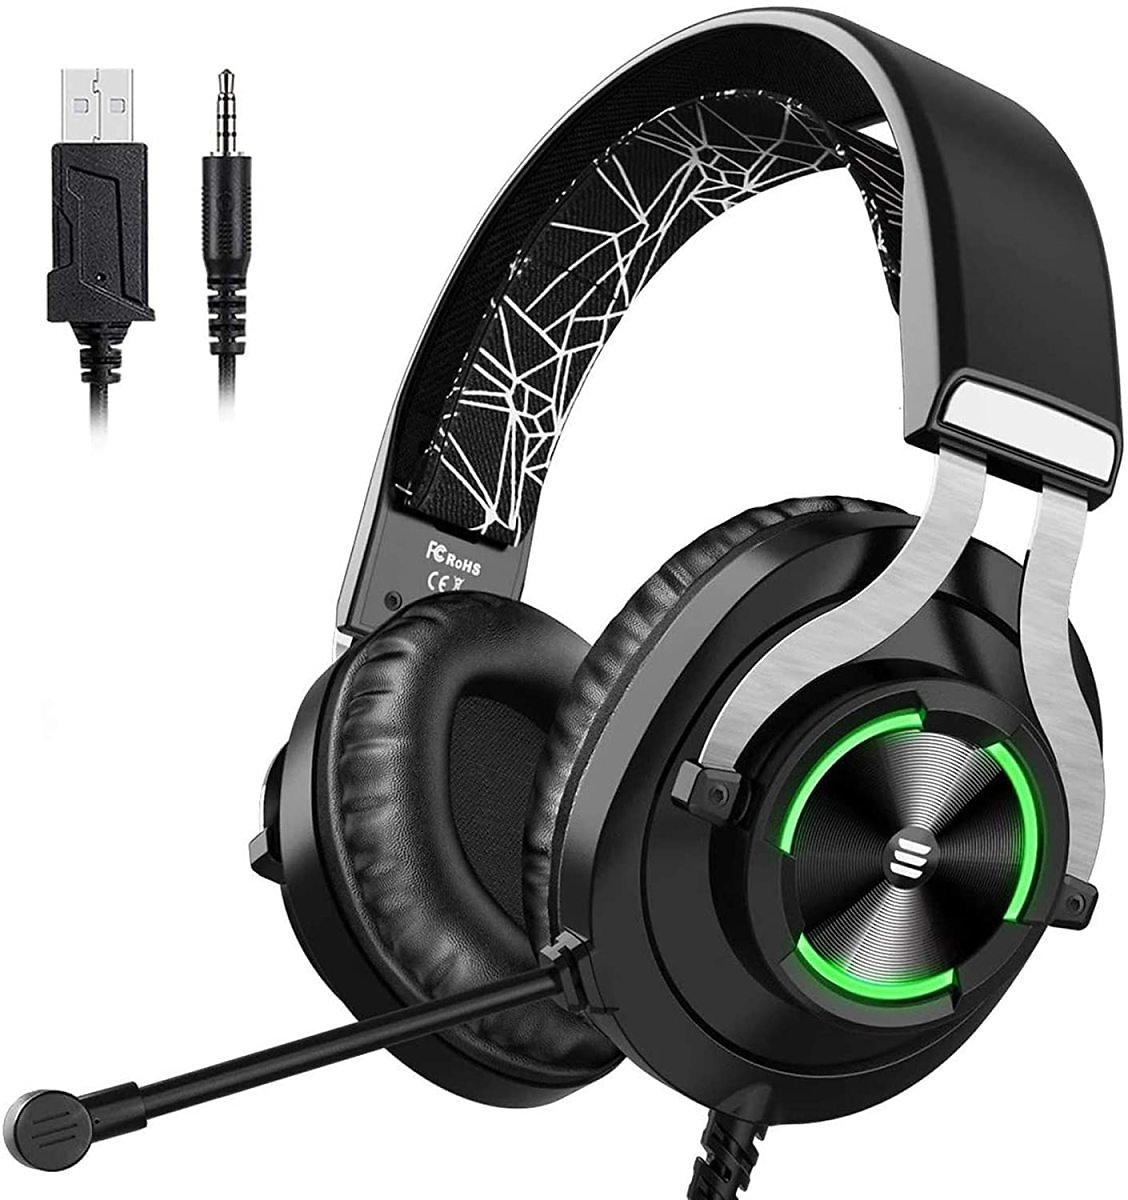 Gaming Headset with Noise Cancelling Mic for PC, Laptop, Xbox One Controller, PS4